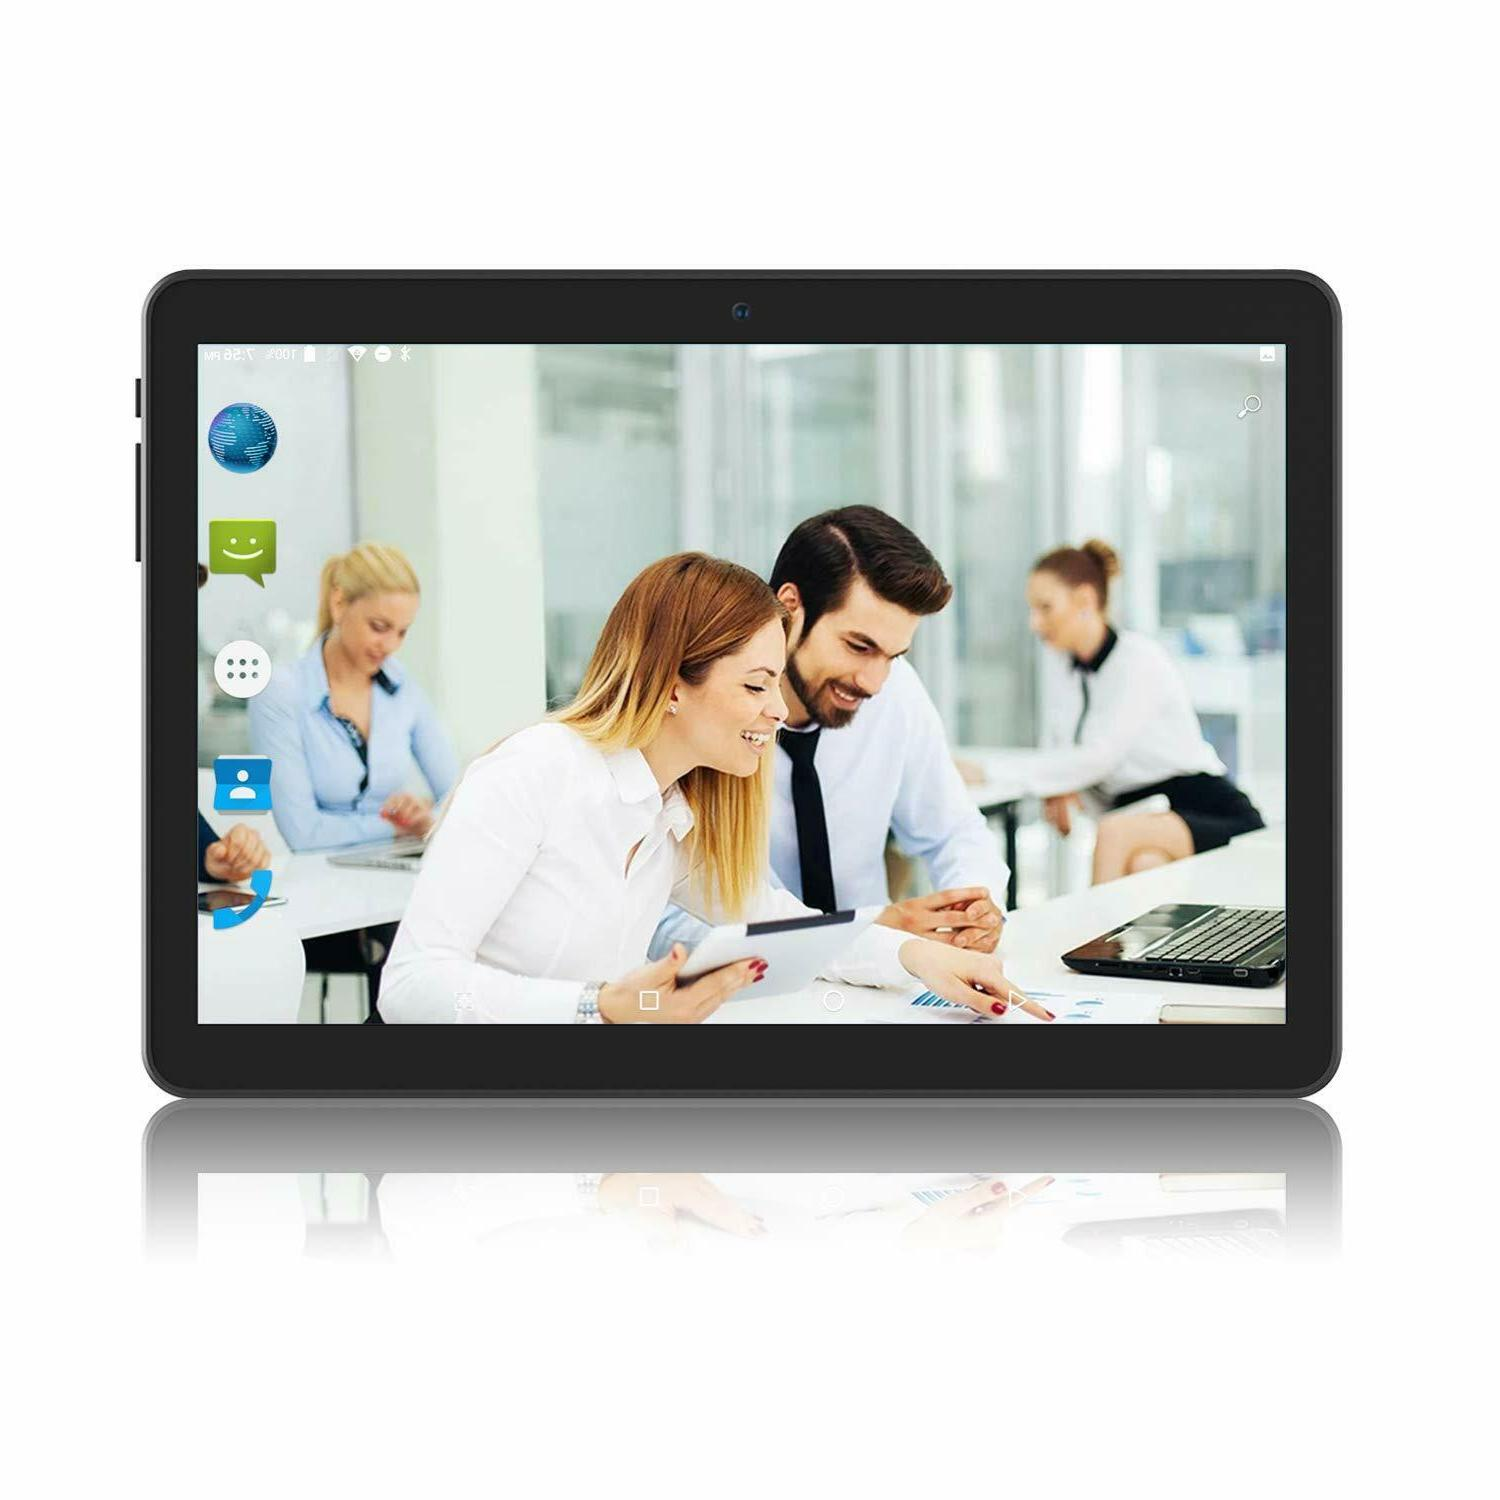 Tablet Go 8.1, Tablet PC with TF Card and Dual Camera,32GB